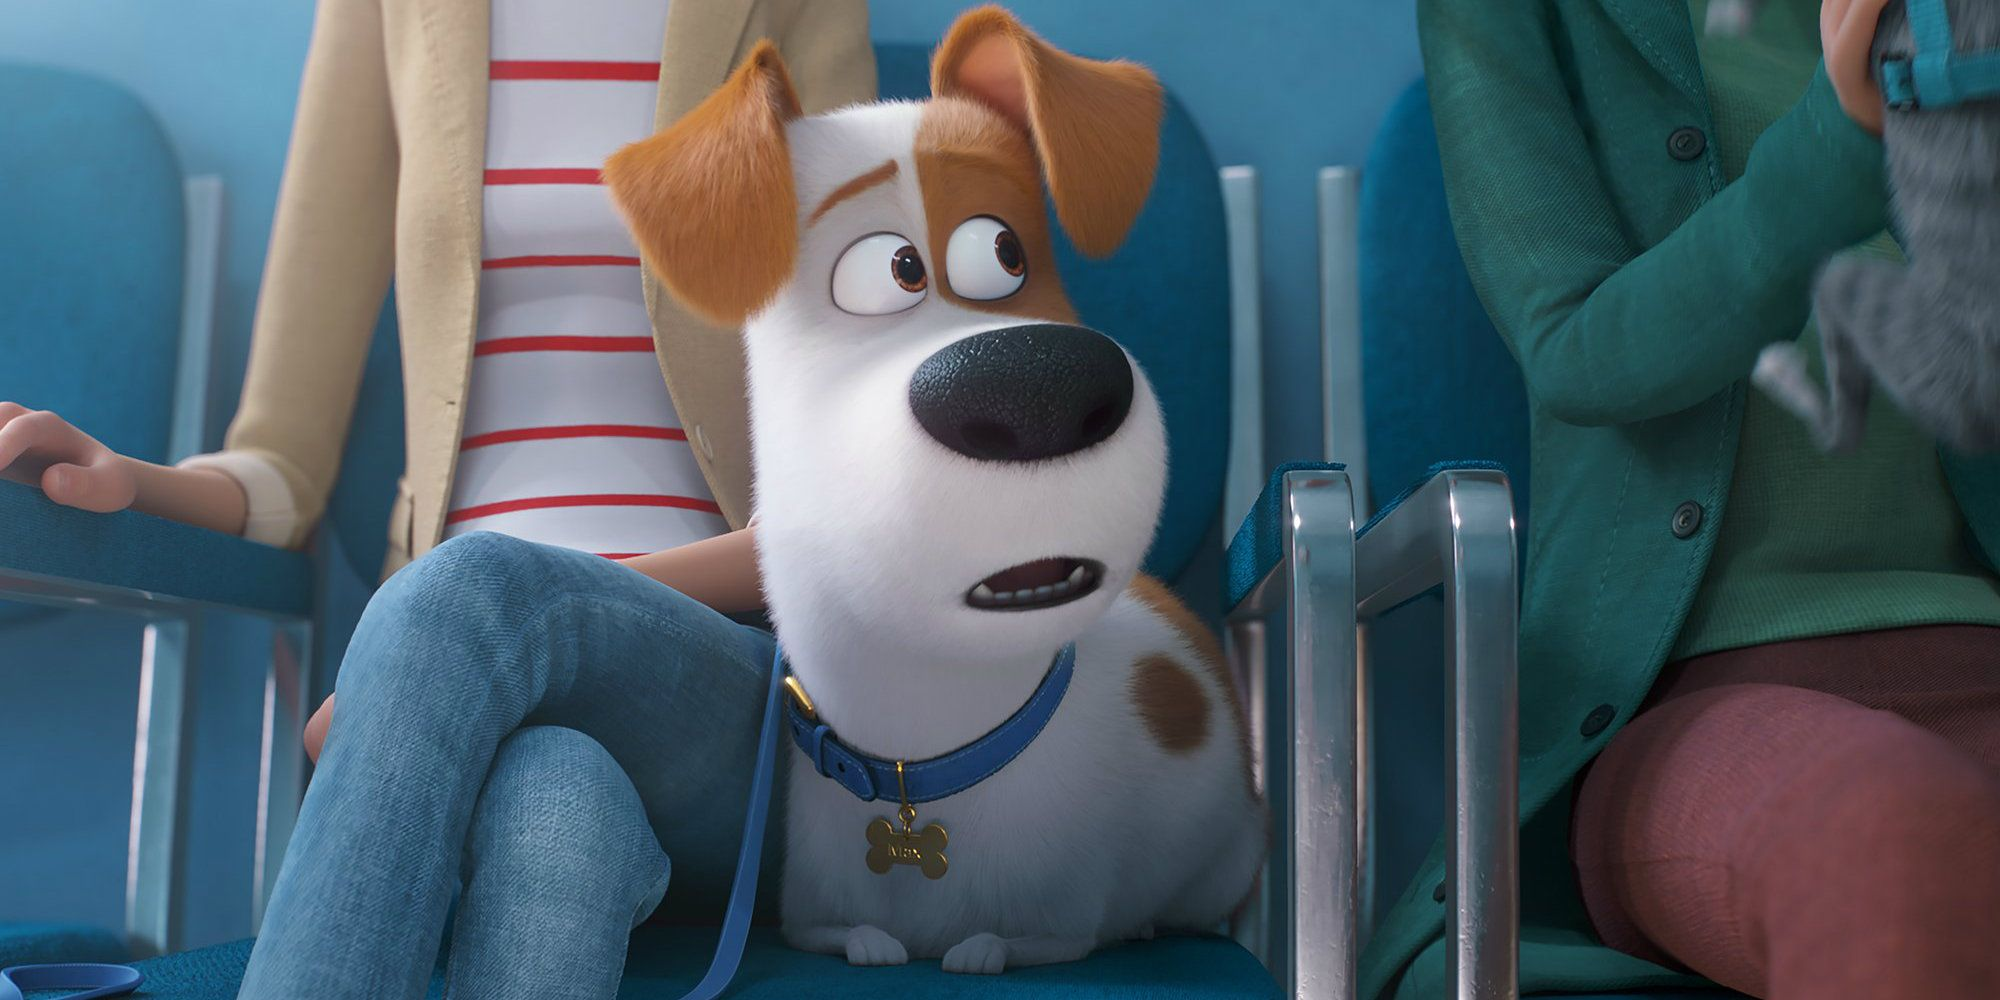 The Secret Life of Pets 2 Trailer: Max Hates Going to the Vet